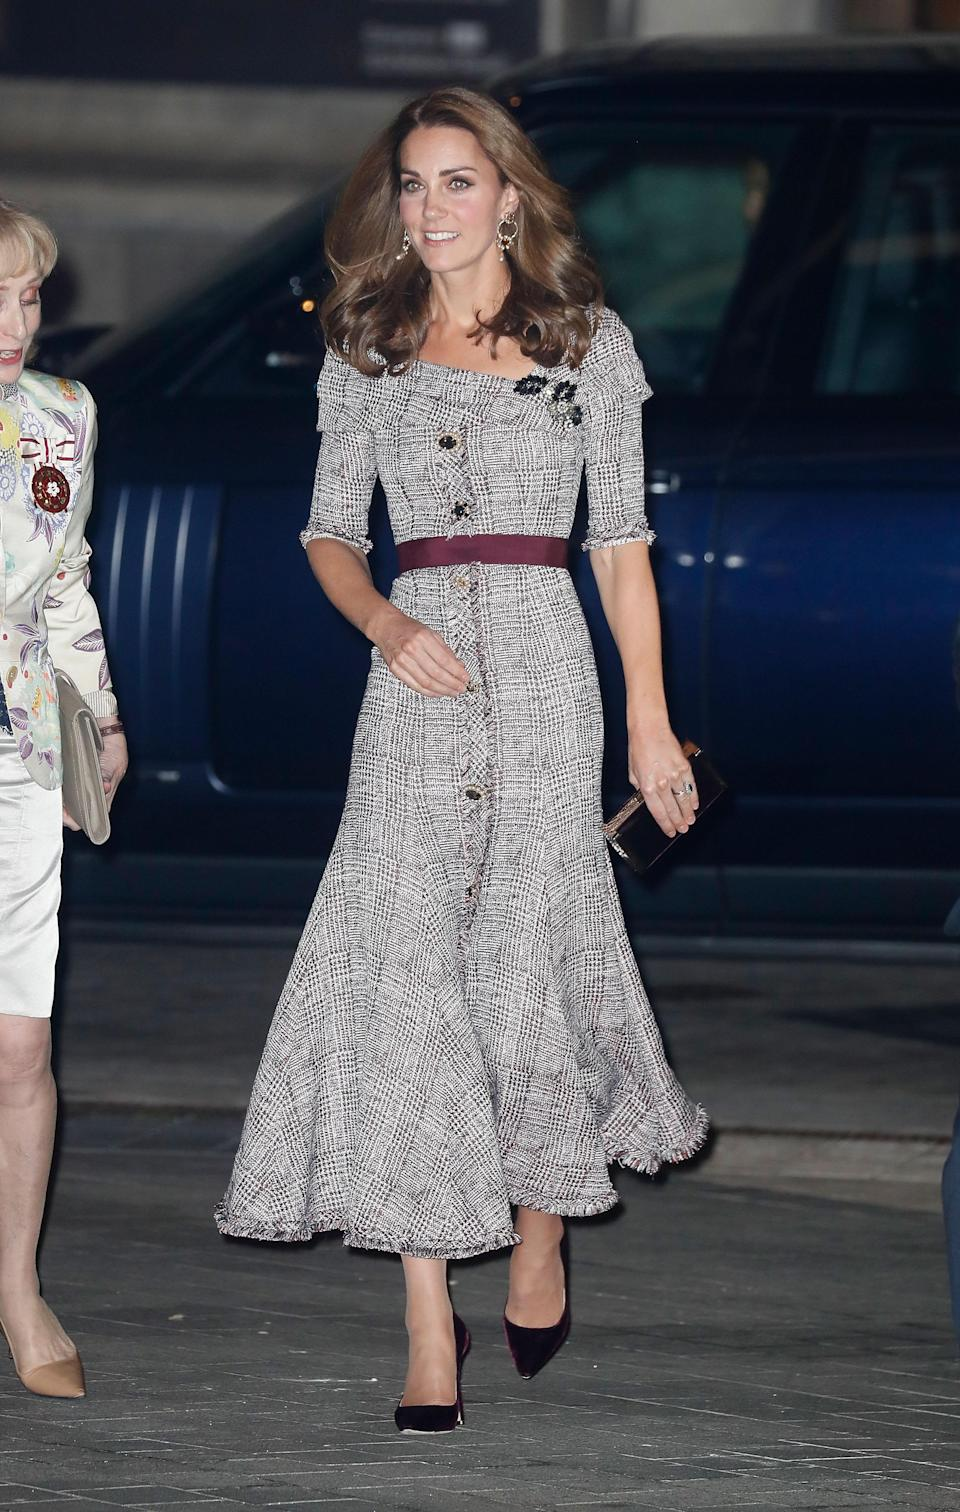 Kate Middleton attends the opening of the V&A Photography Centre at Victoria & Albert Museum. Photo: Getty